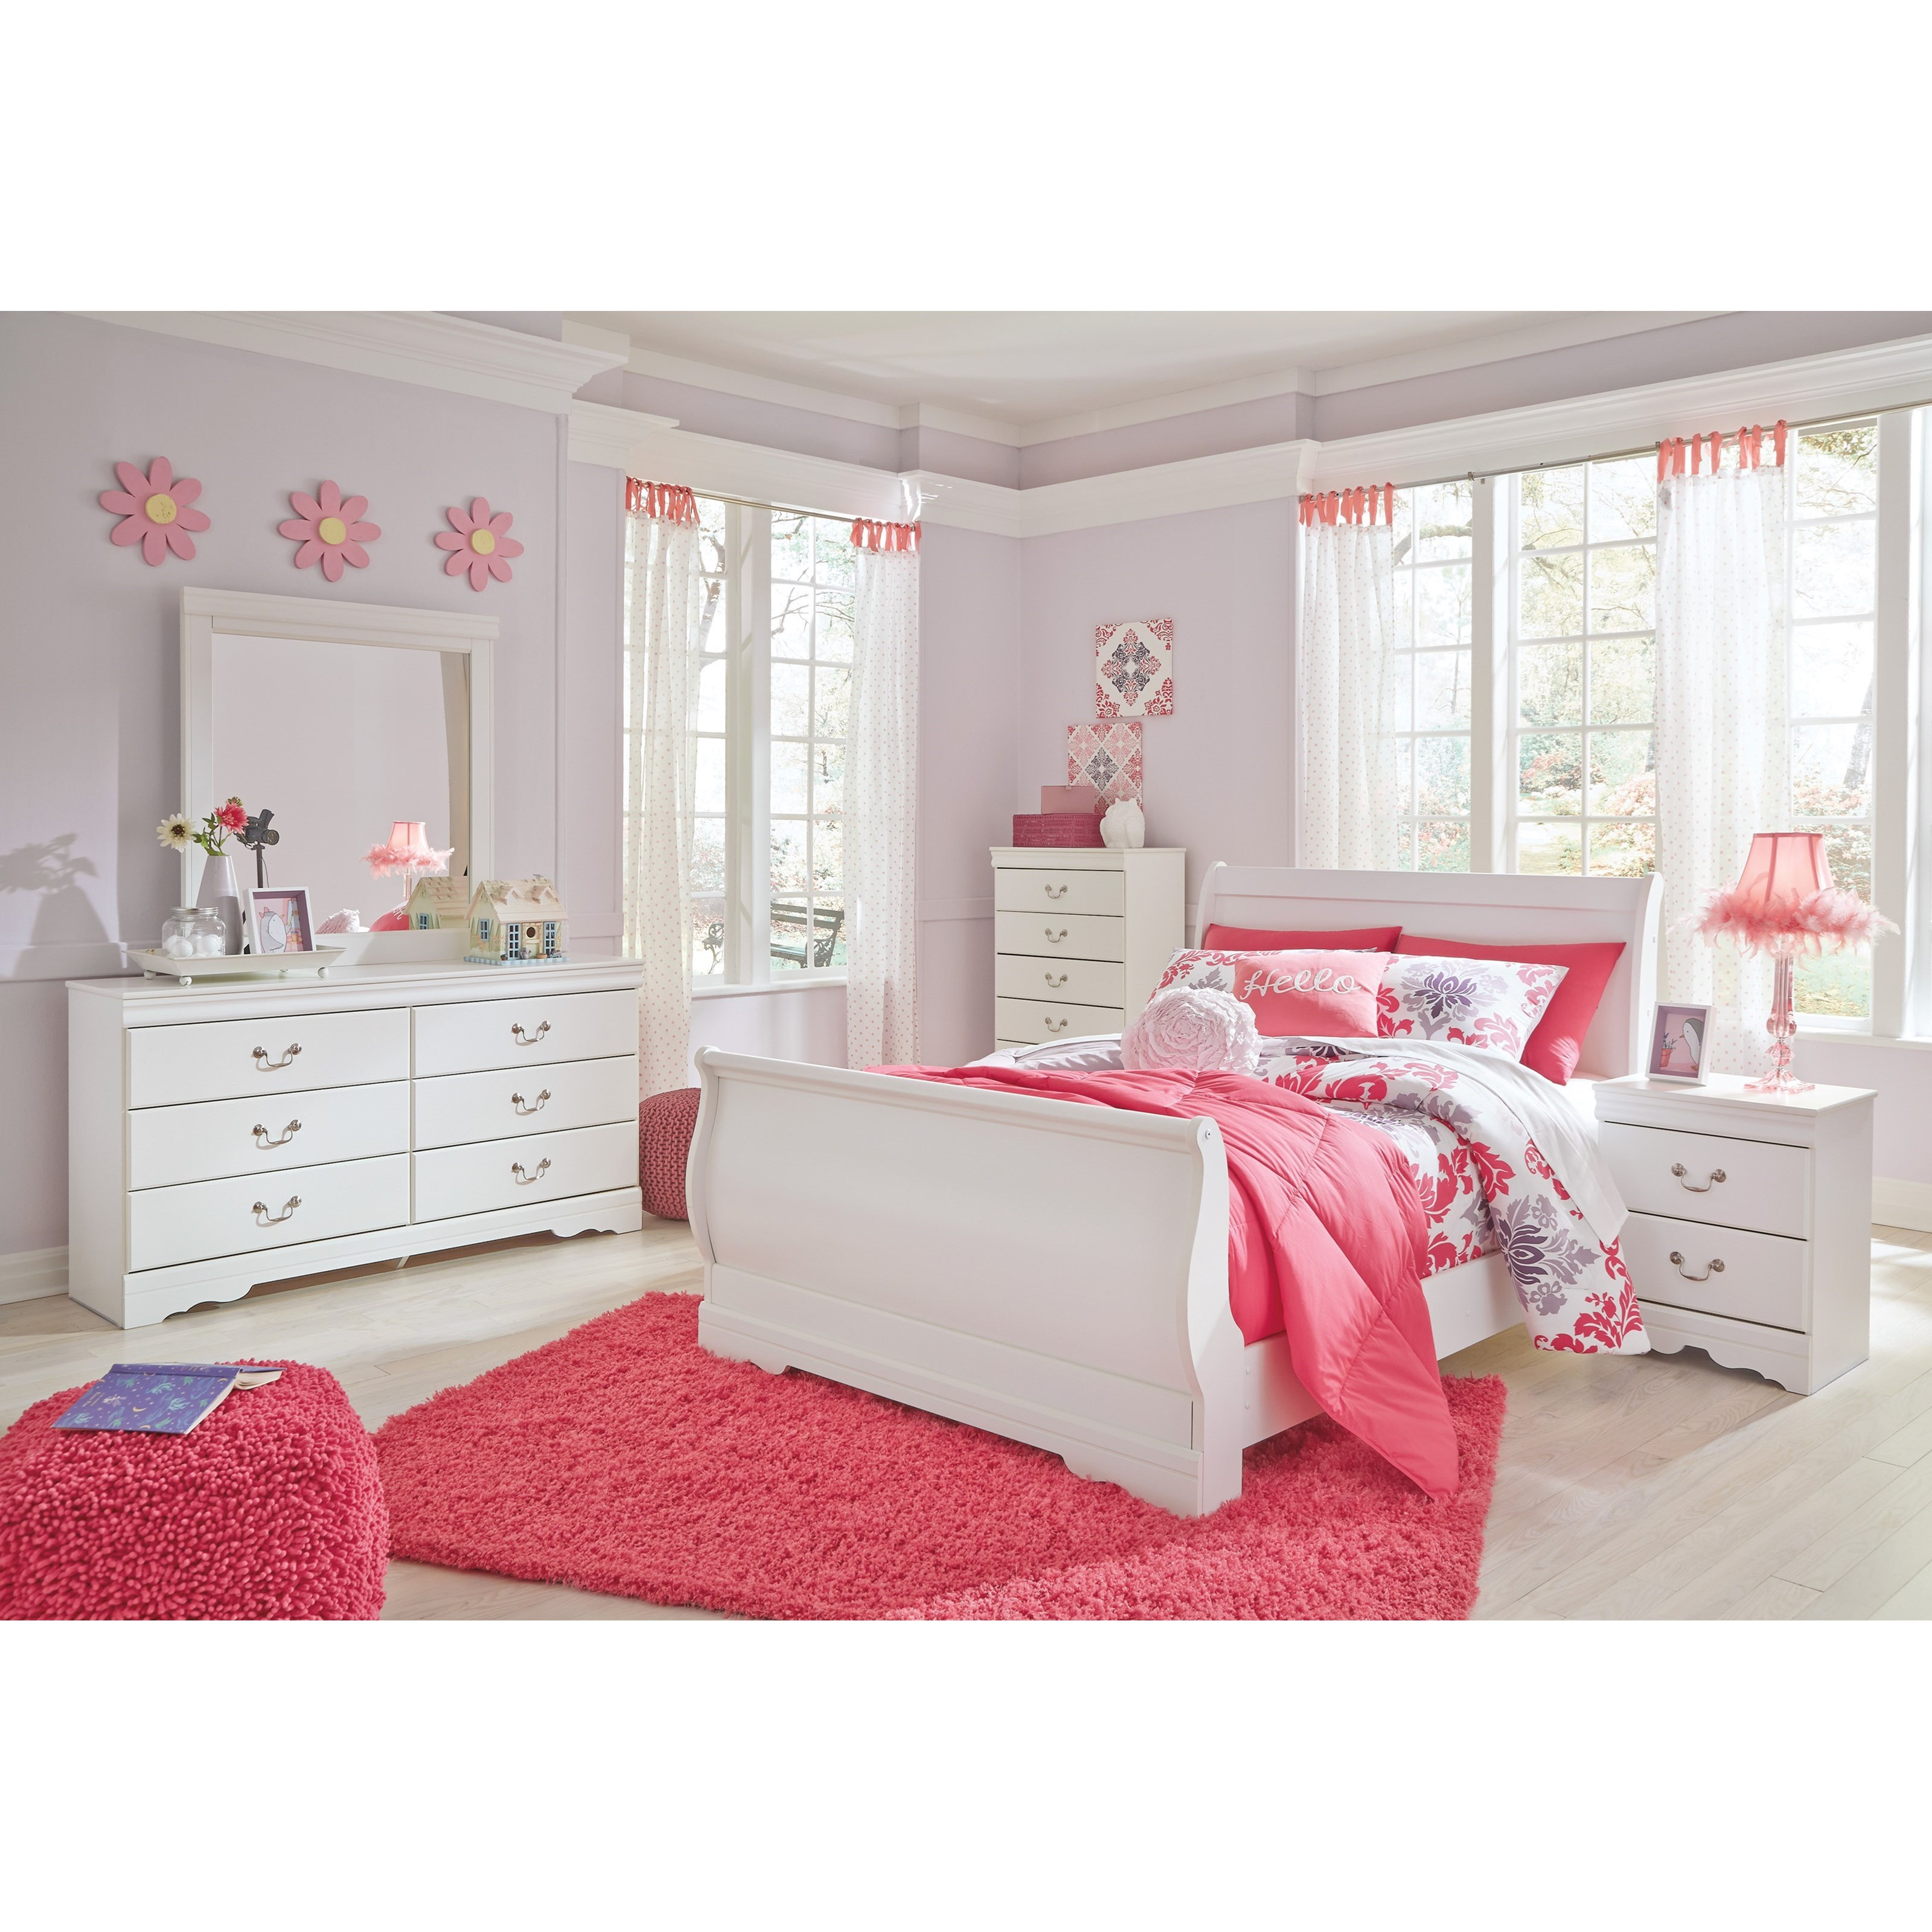 Anarasia 4 Piece Bedroom Group by Signature Design by Ashley at Furniture Barn